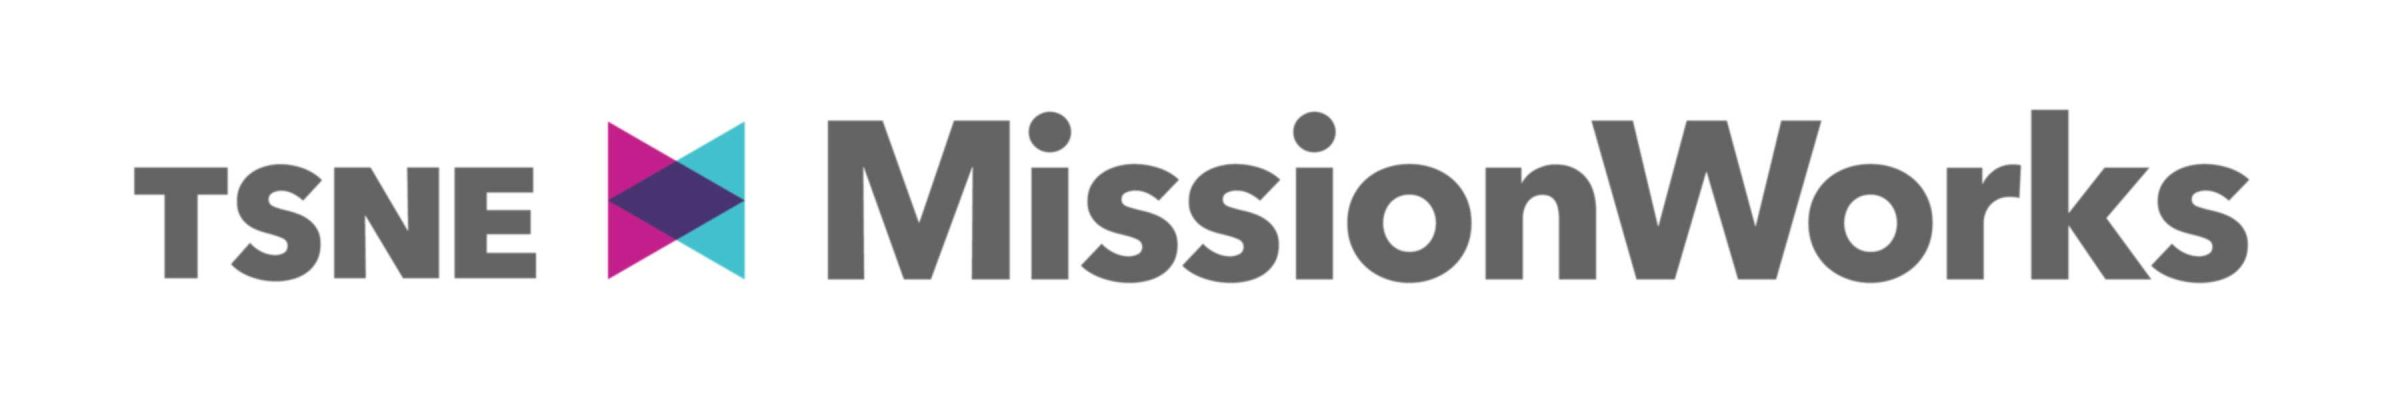 TSNE MissionWorks logo and wordmark